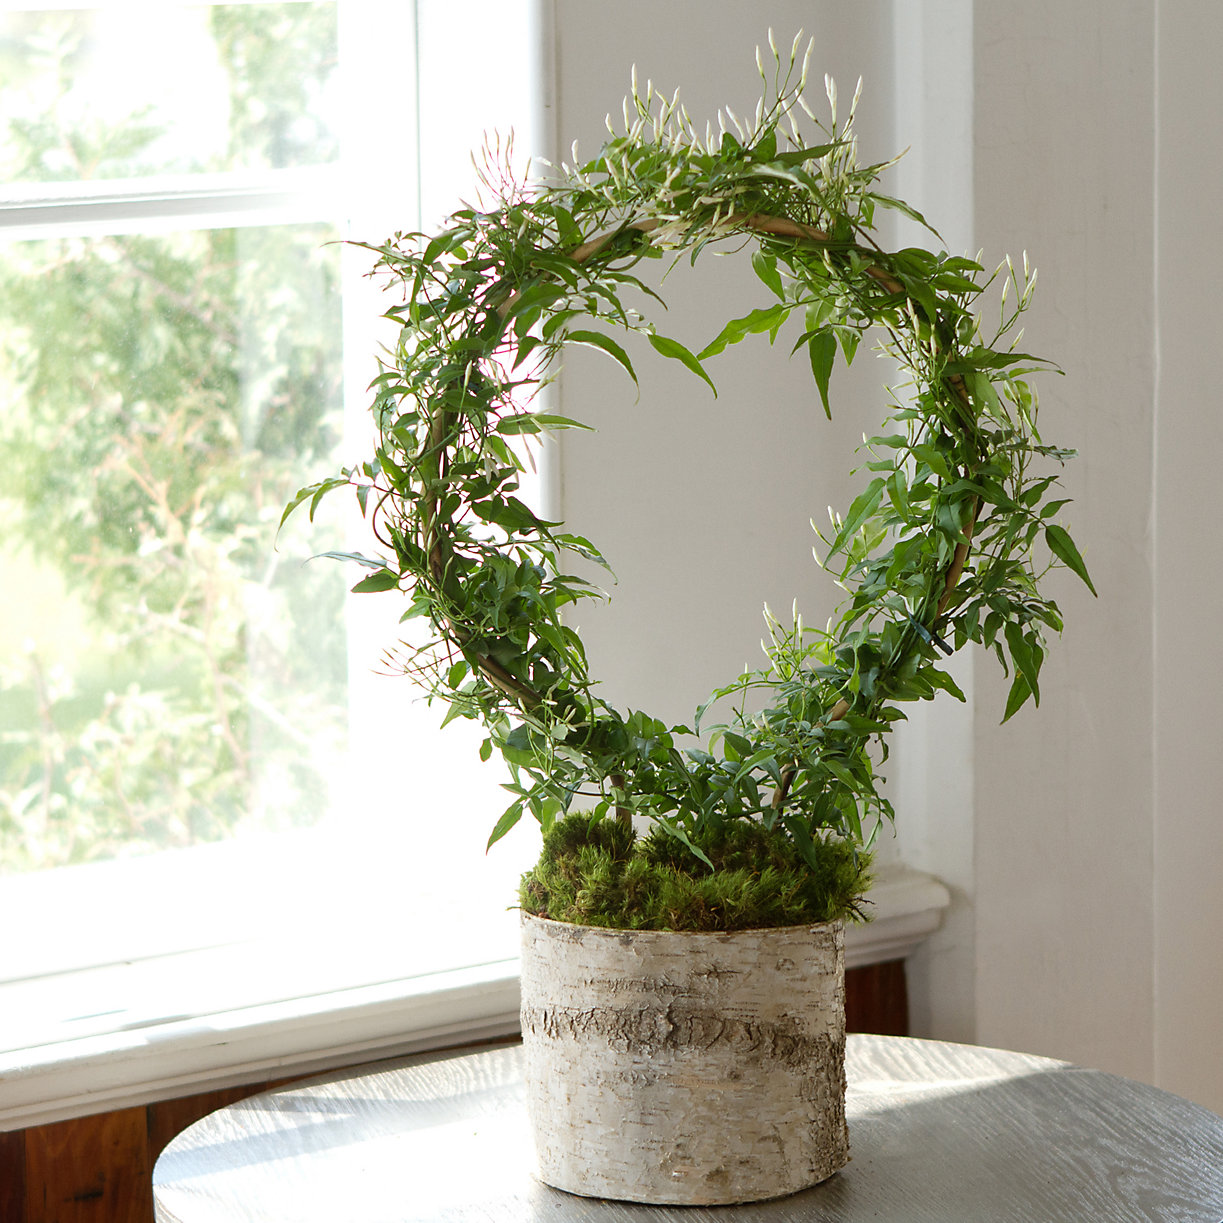 28681864 000 a zoom2 for Indoor plant gift ideas